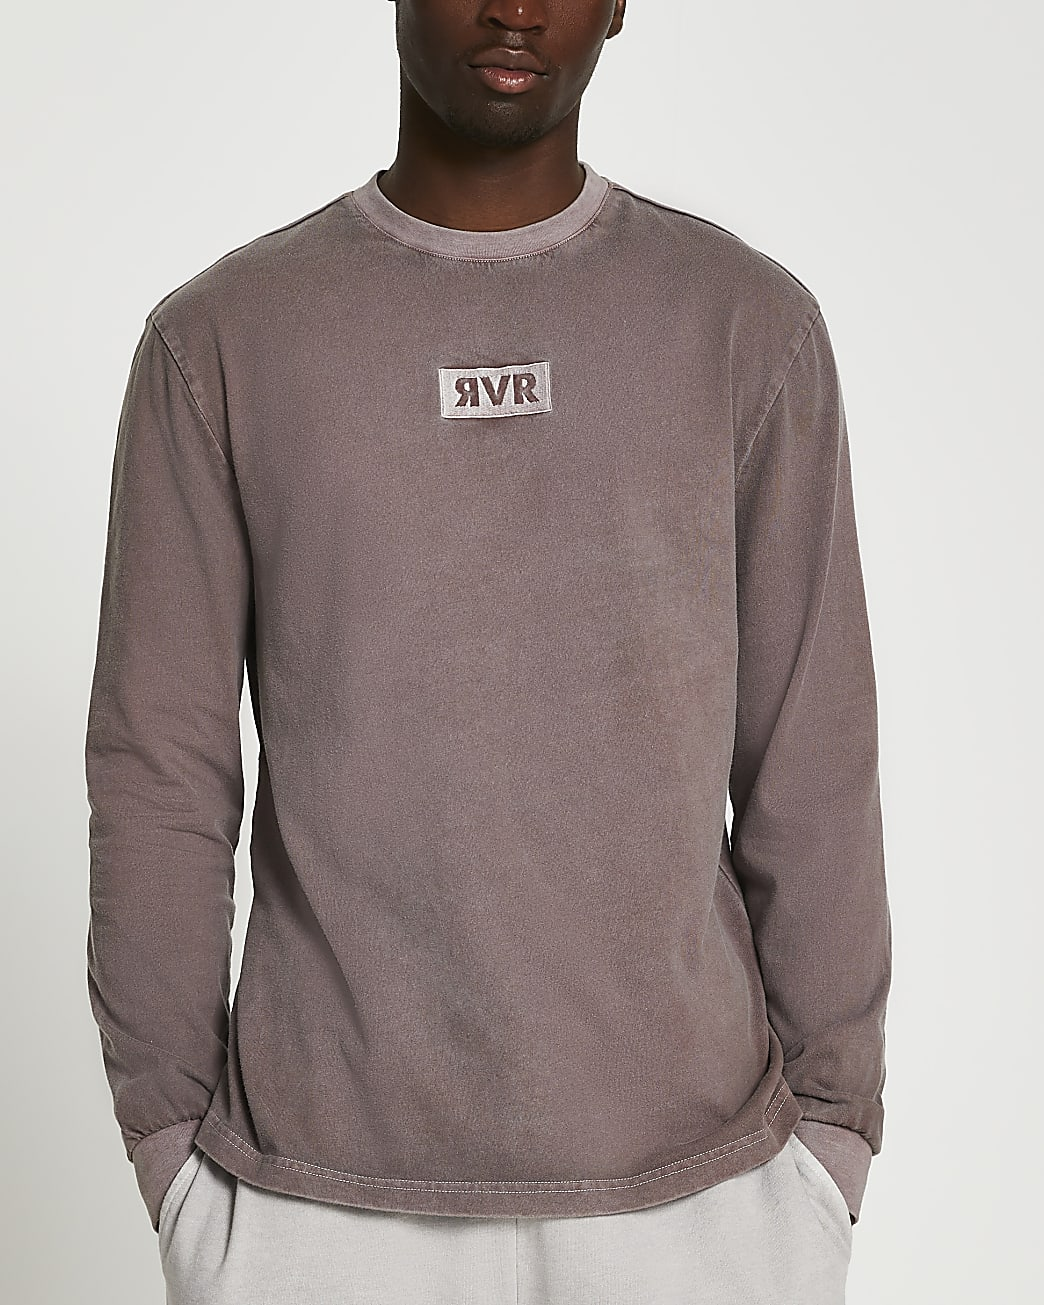 Brown washed drench RVR long sleeve t-shirt